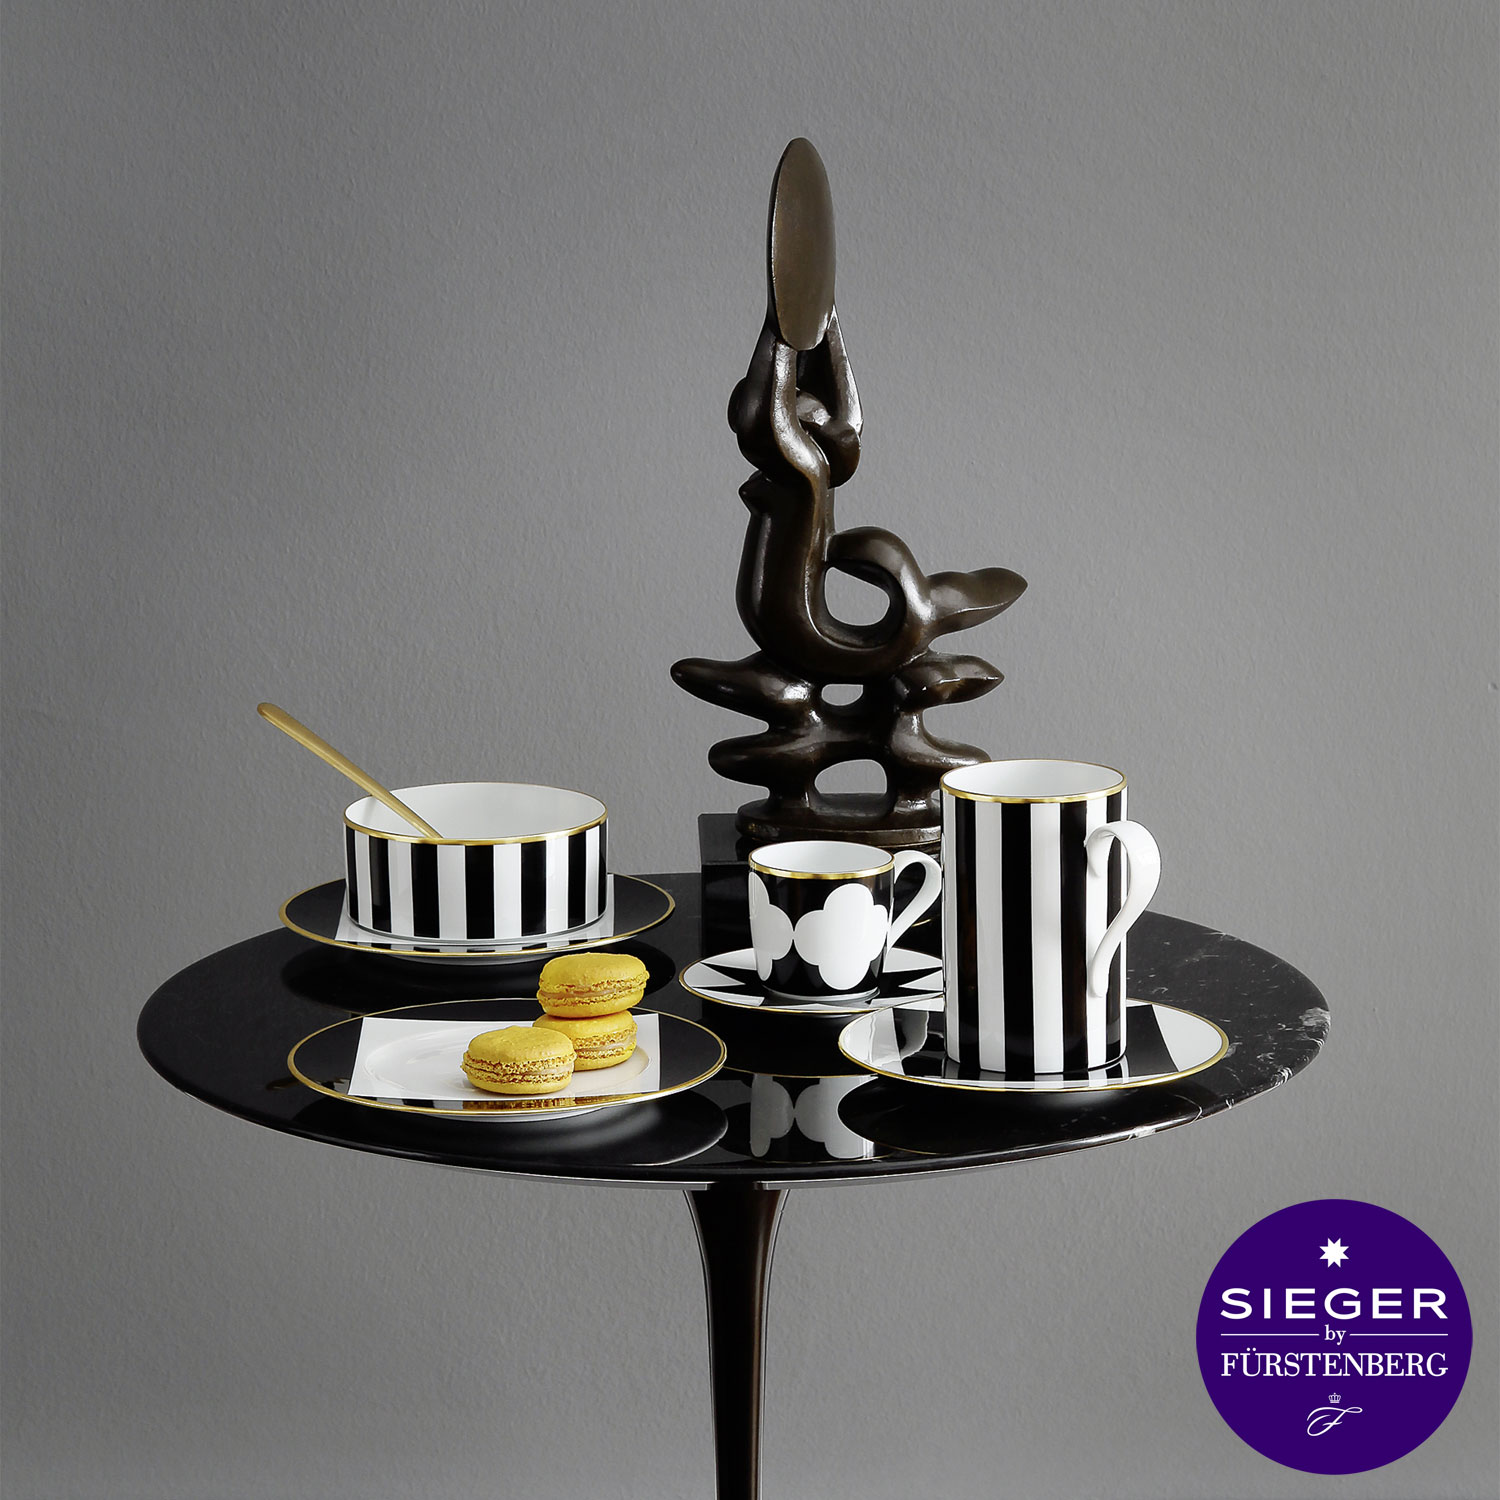 Black and white porcelain on a little side talbe in black